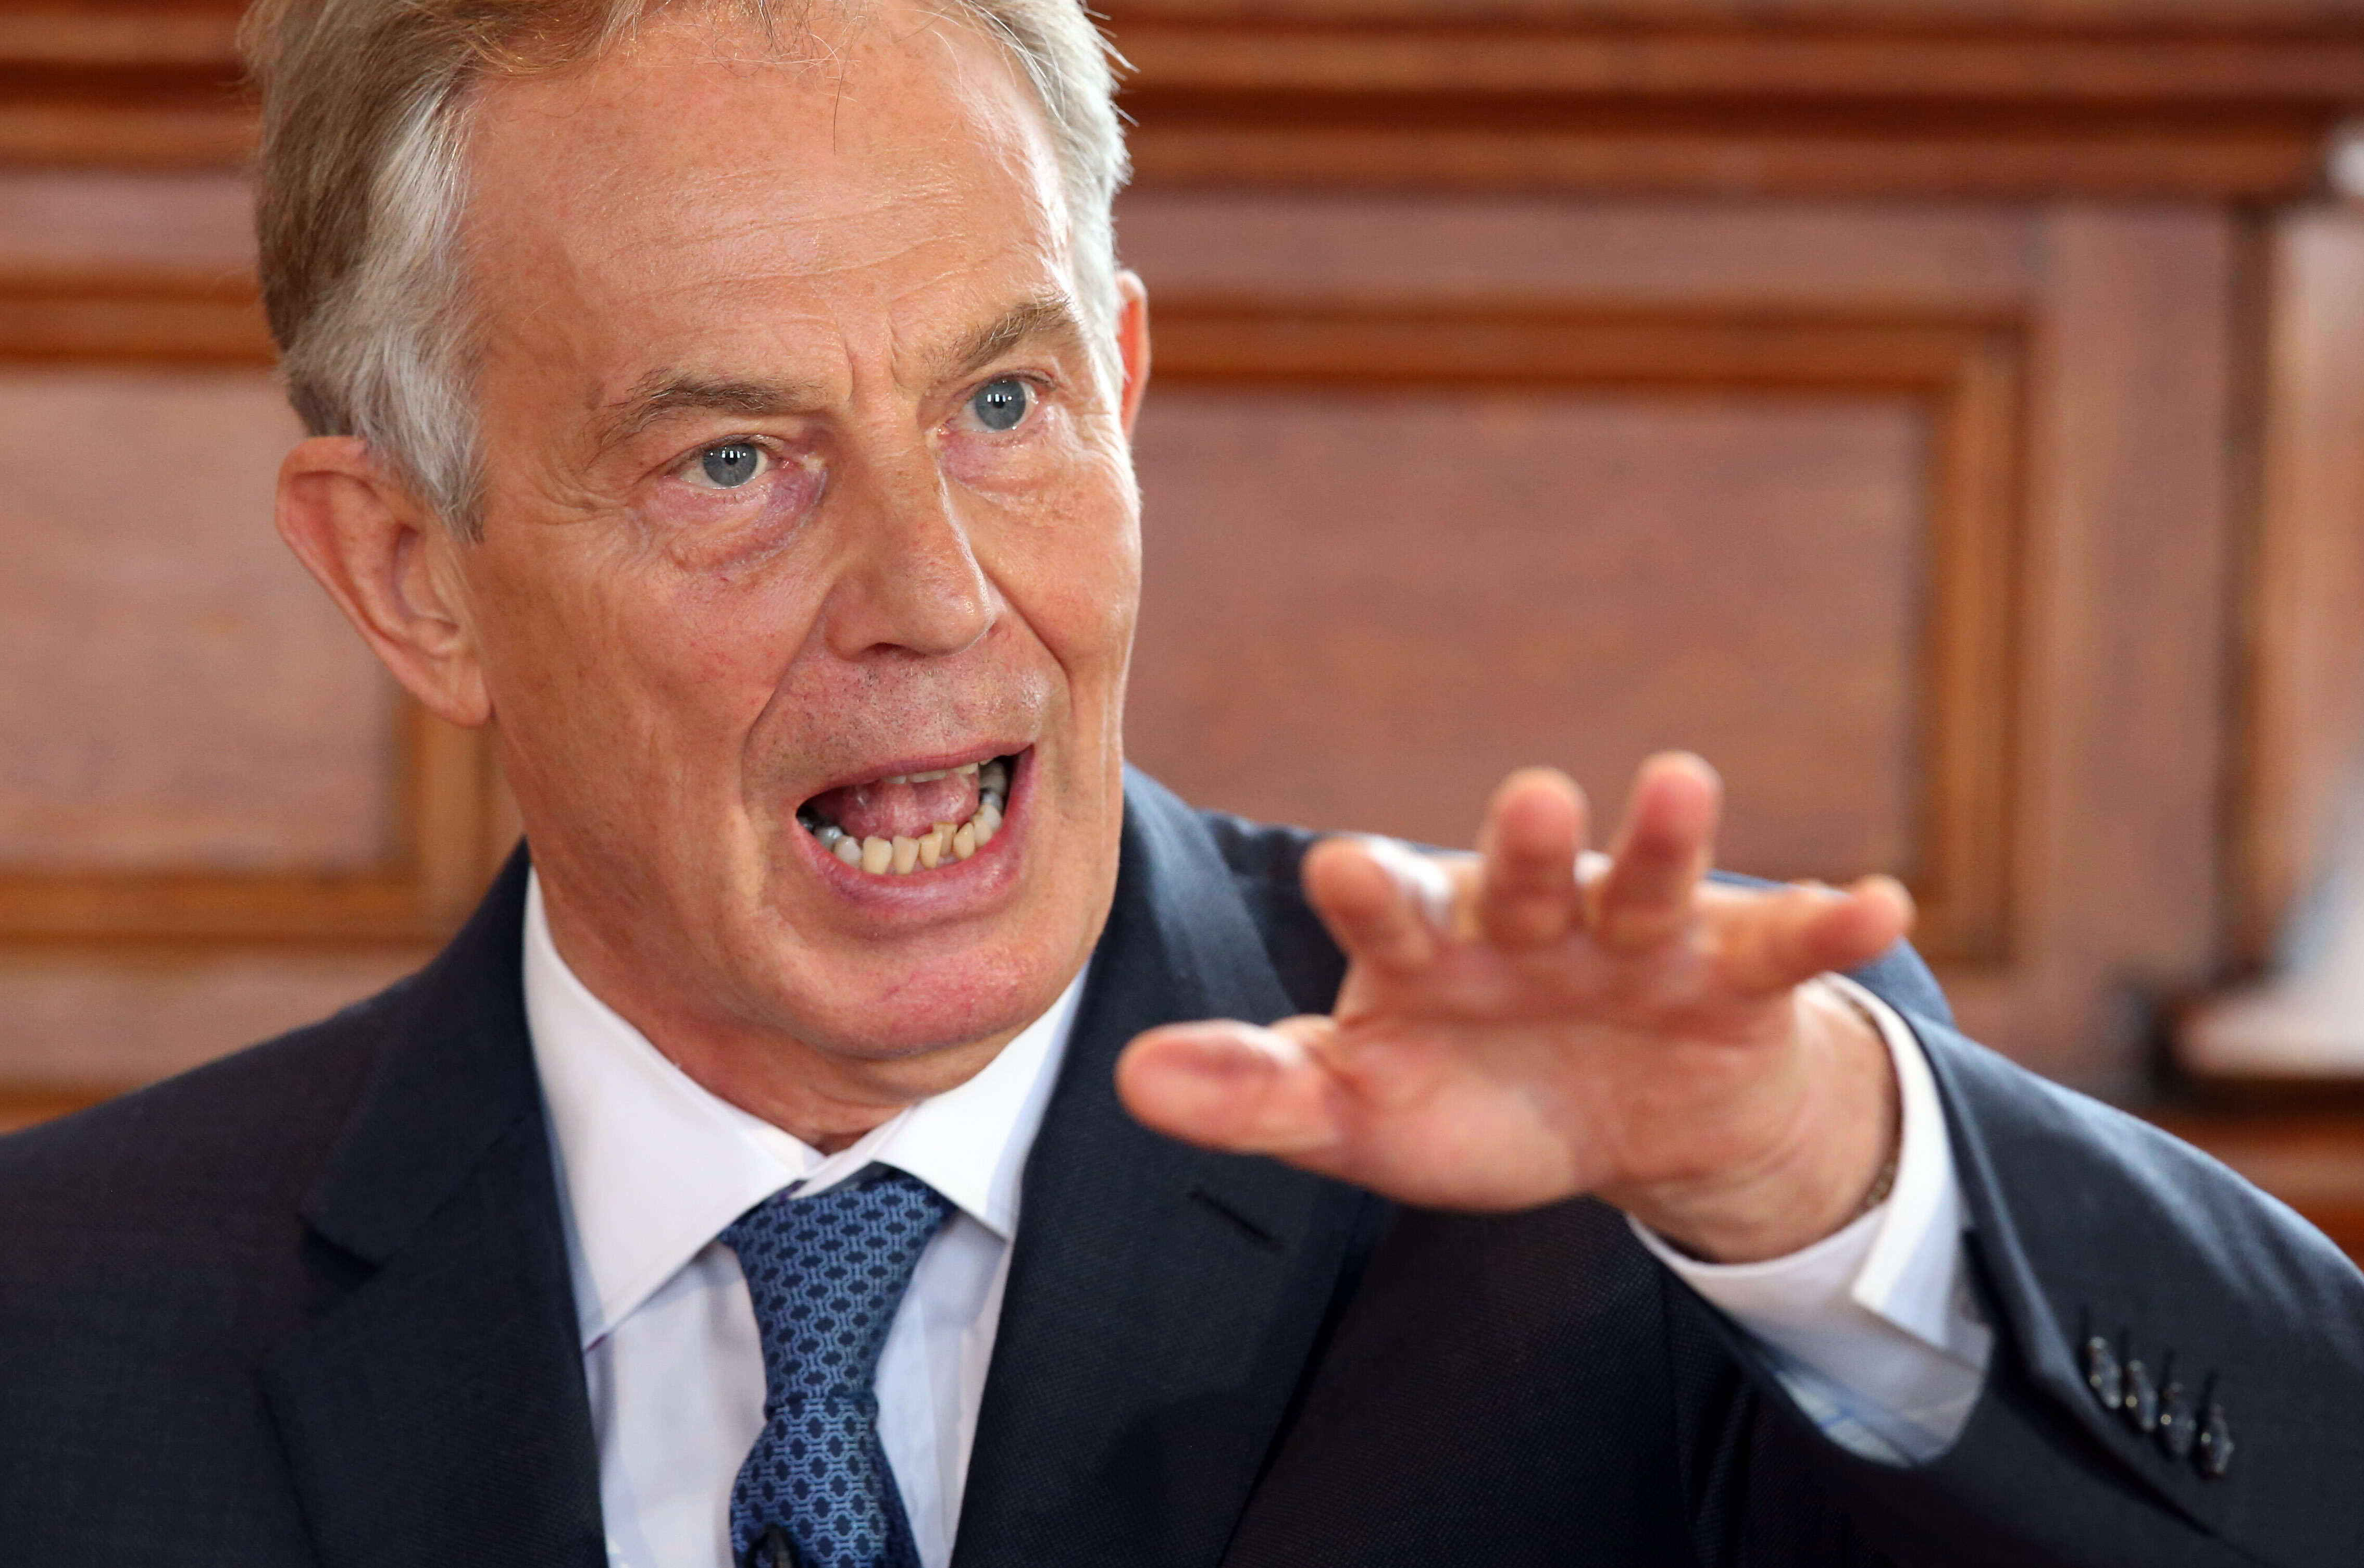 Heres What You Need To Know About Shadowy Global Elite Bilderberg Meeting blair